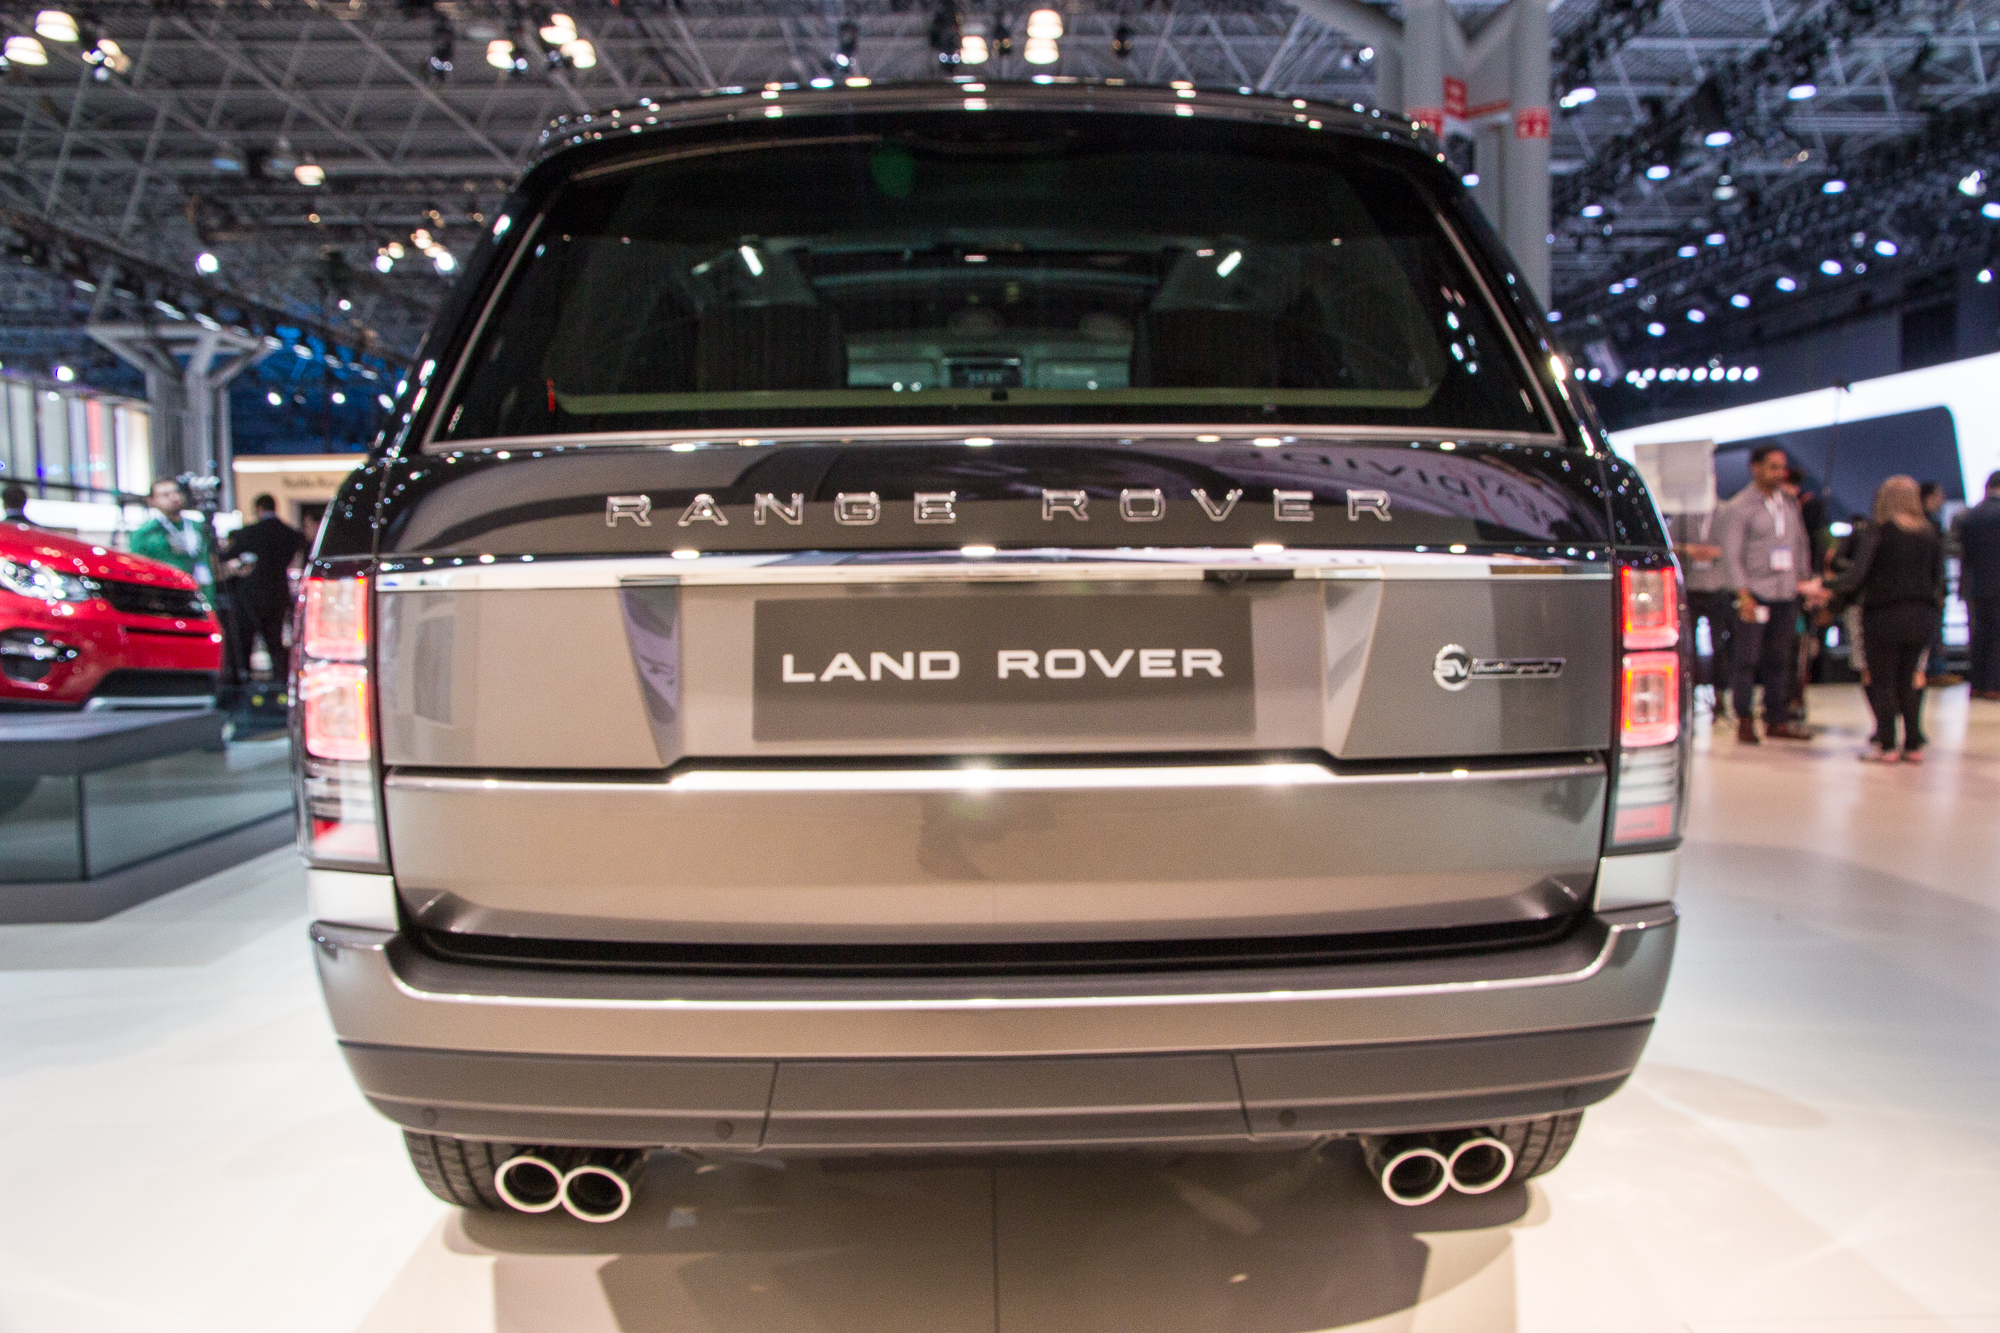 land rover launches new range rover svautobiography flagship 200k 550hp. Black Bedroom Furniture Sets. Home Design Ideas